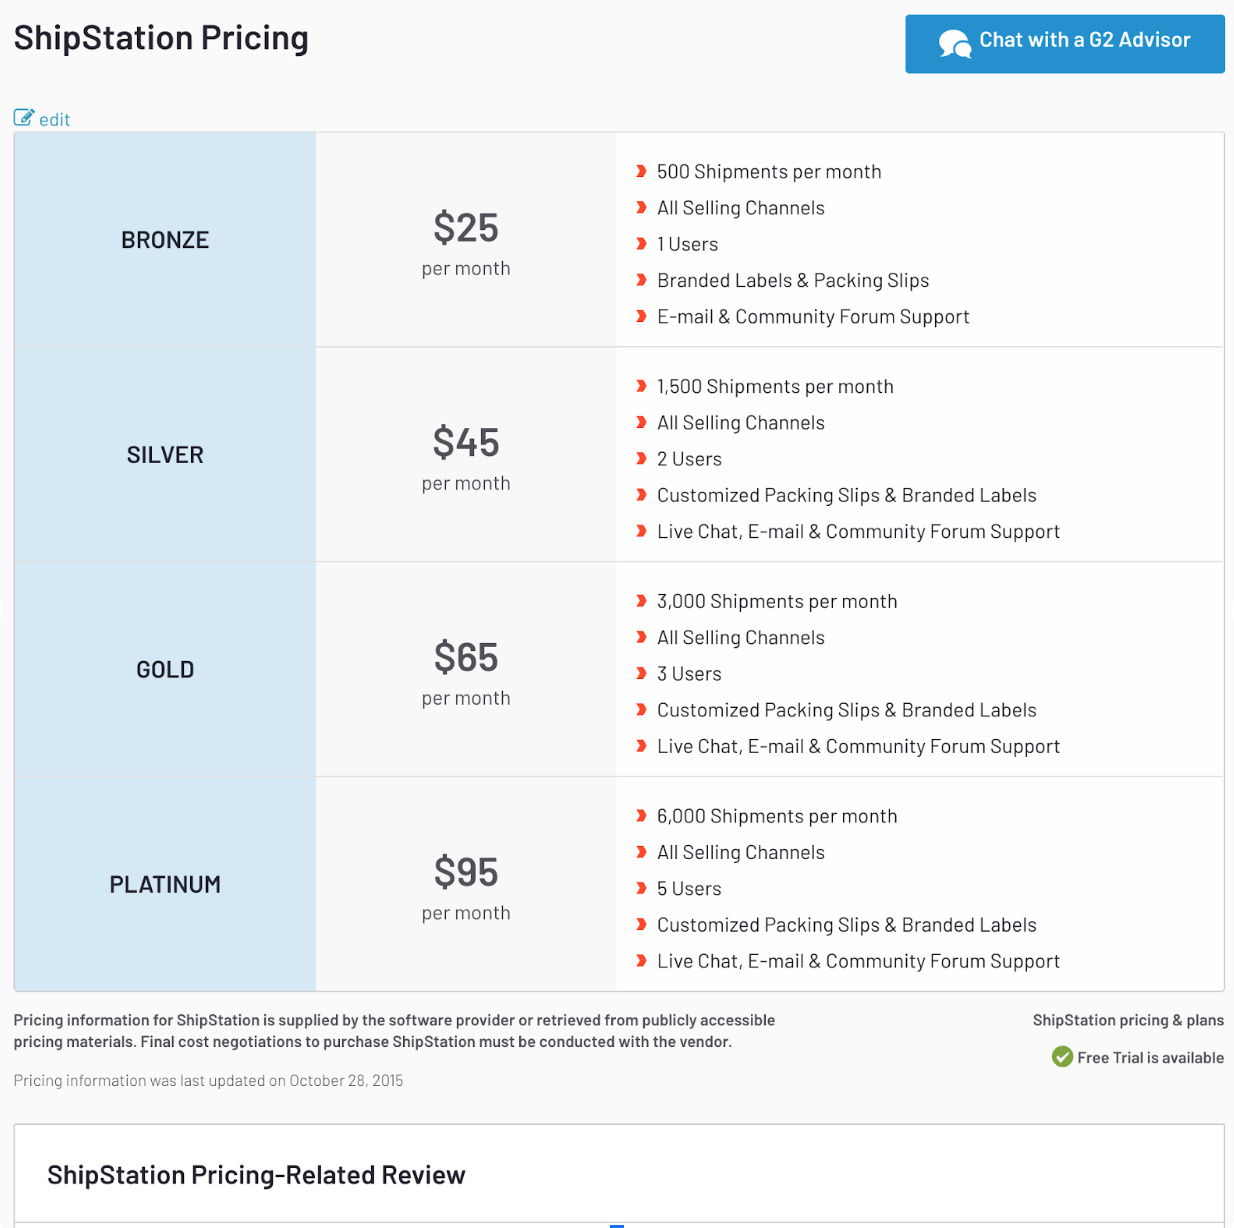 Example of G2 pricing reviews for a product, ShipStation